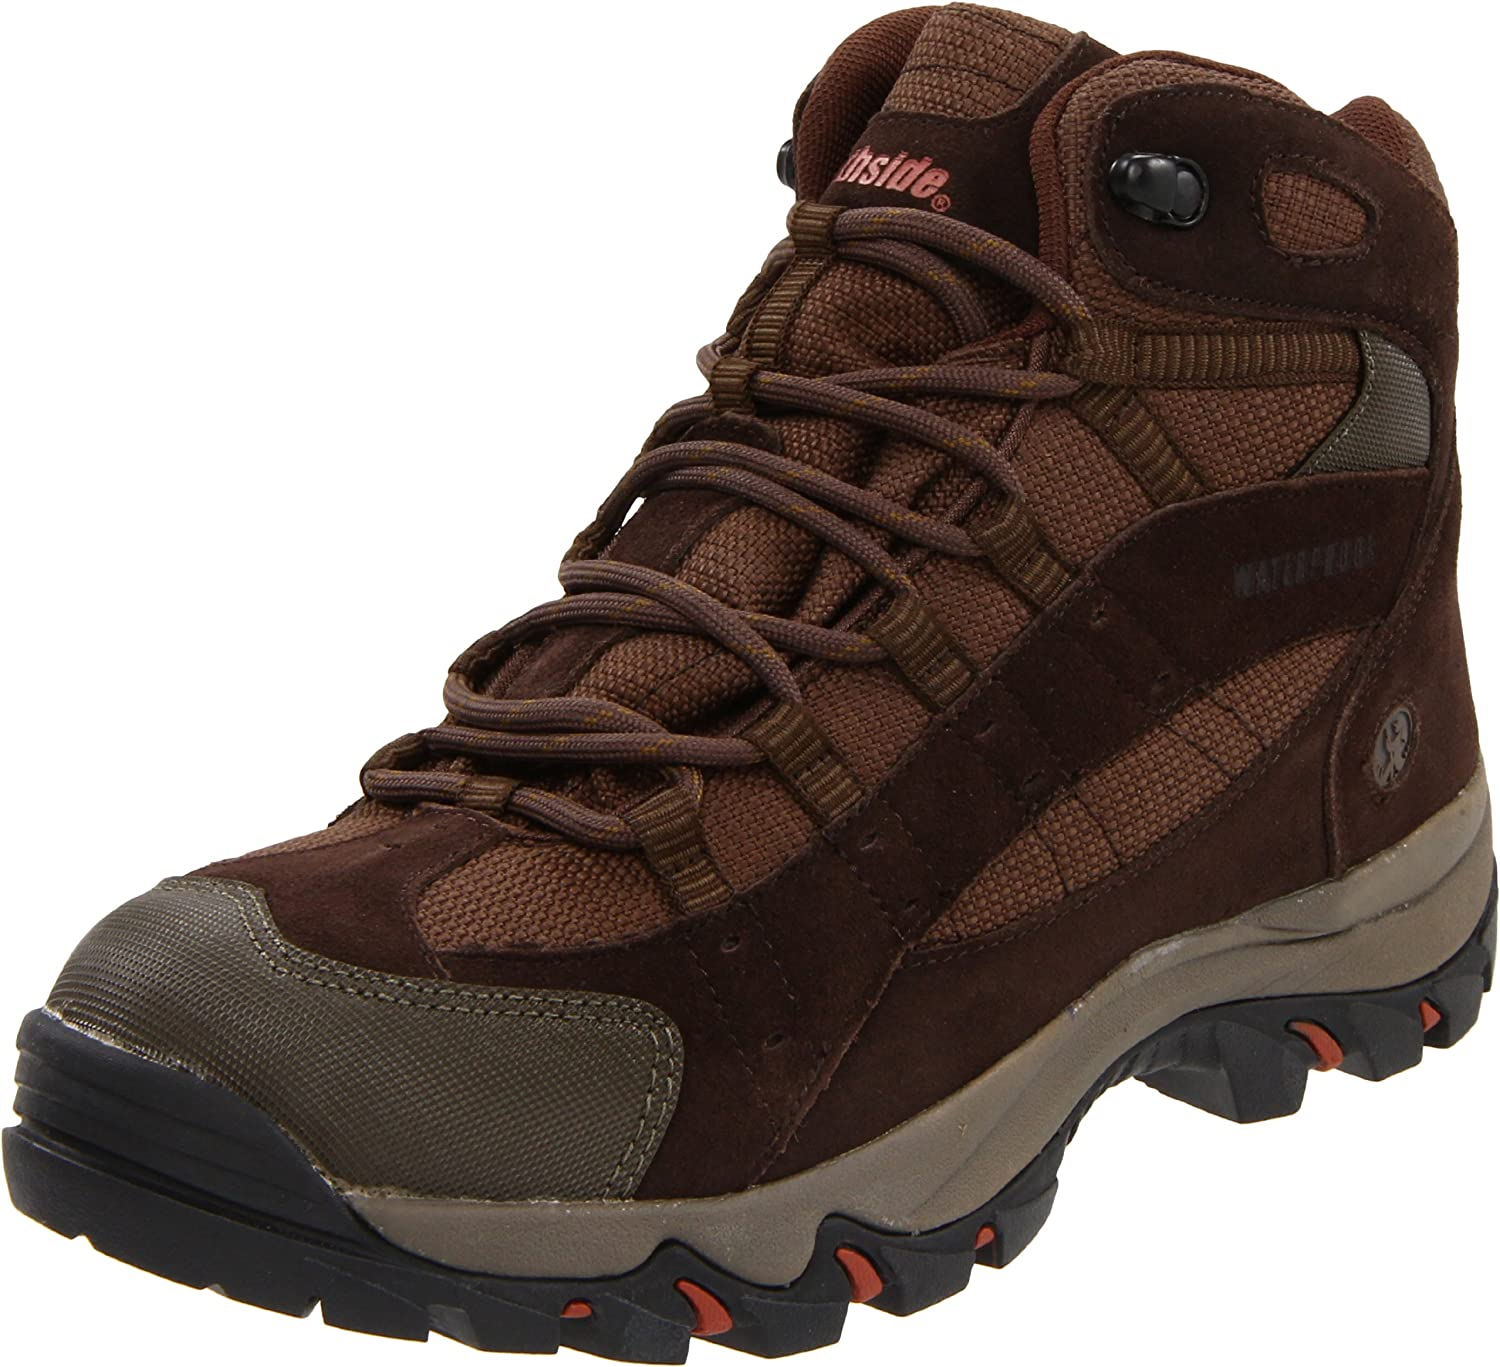 Northside Men's Ridgecrest Boot Mid Hiking Cheap mail order latest specialty store